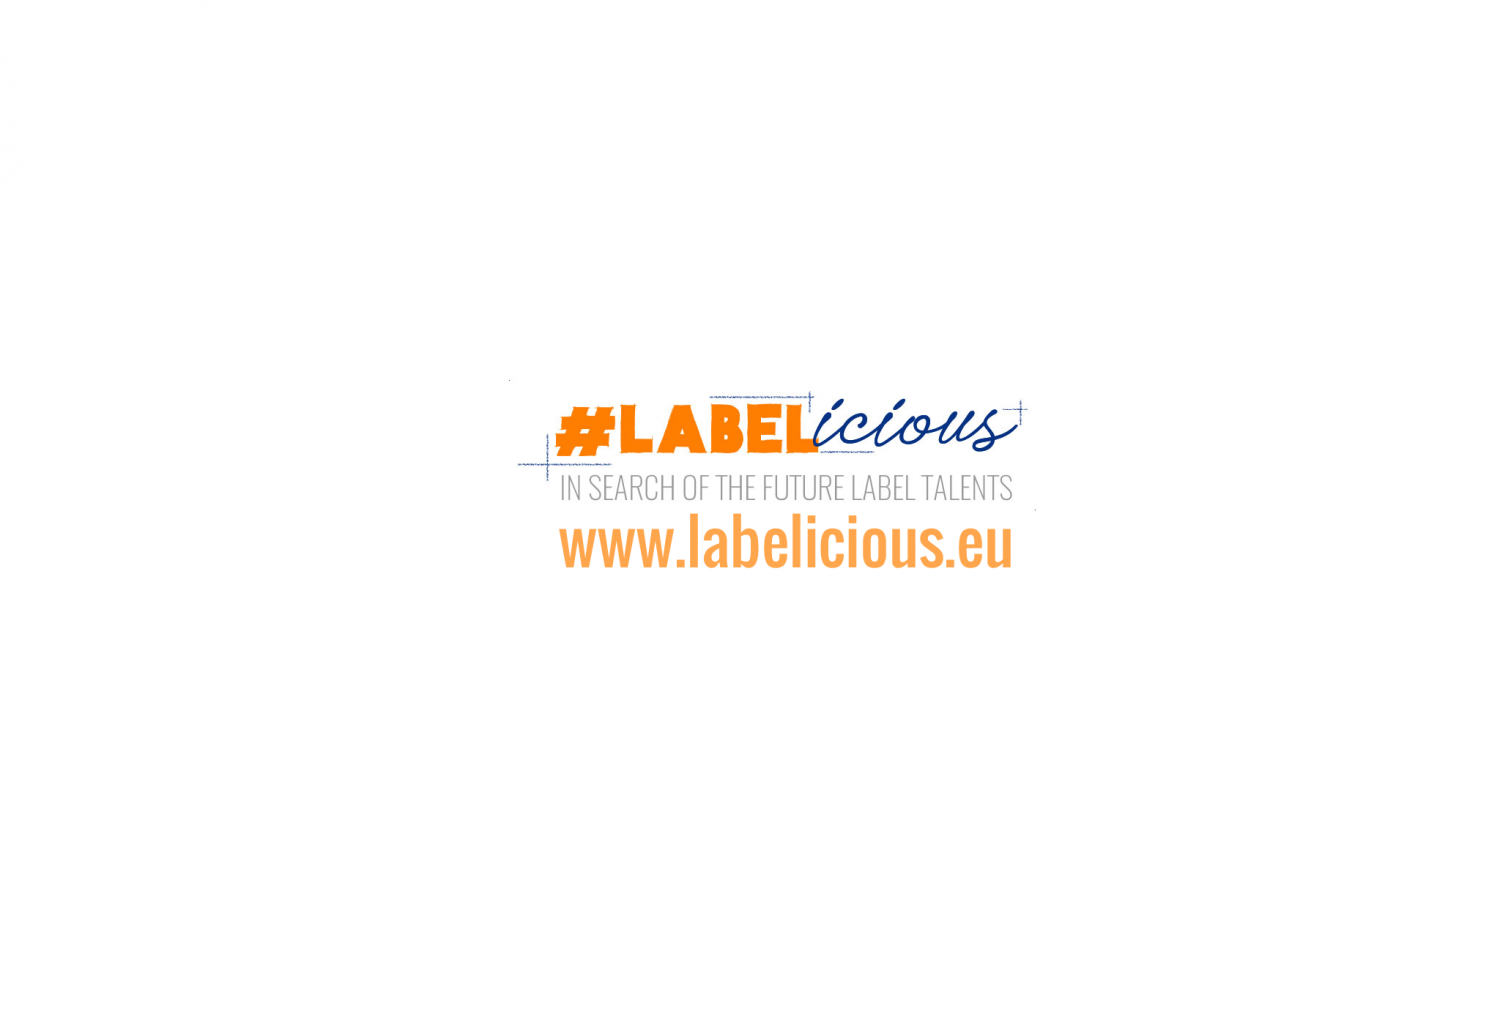 Labelicious European Label Competitors for Designers and Engineers 2019